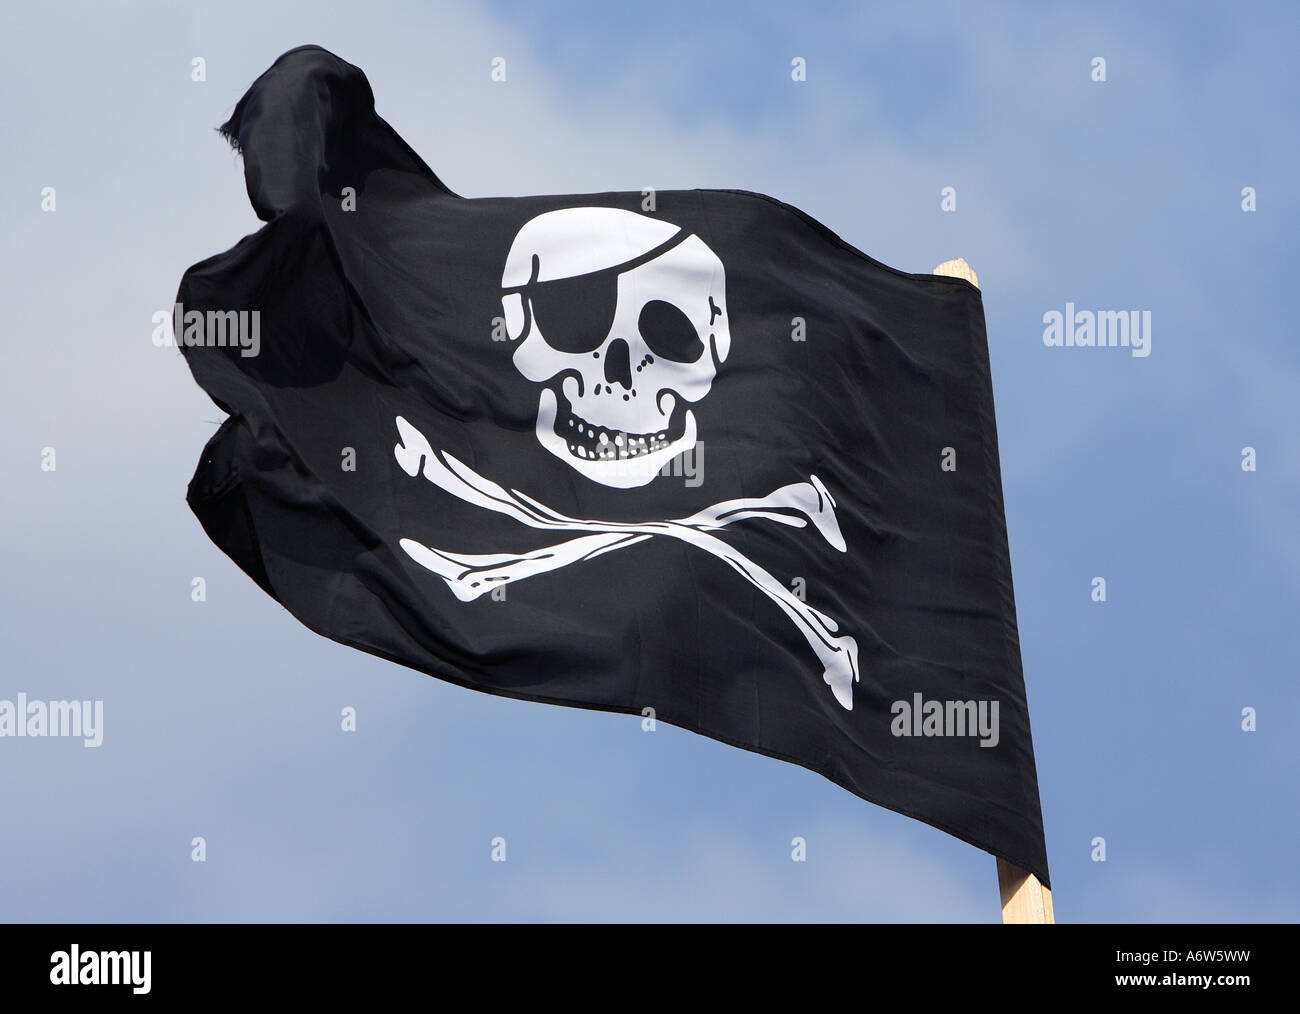 Skull and crossbones - pirate flag, Germany, Europe - Stock Image